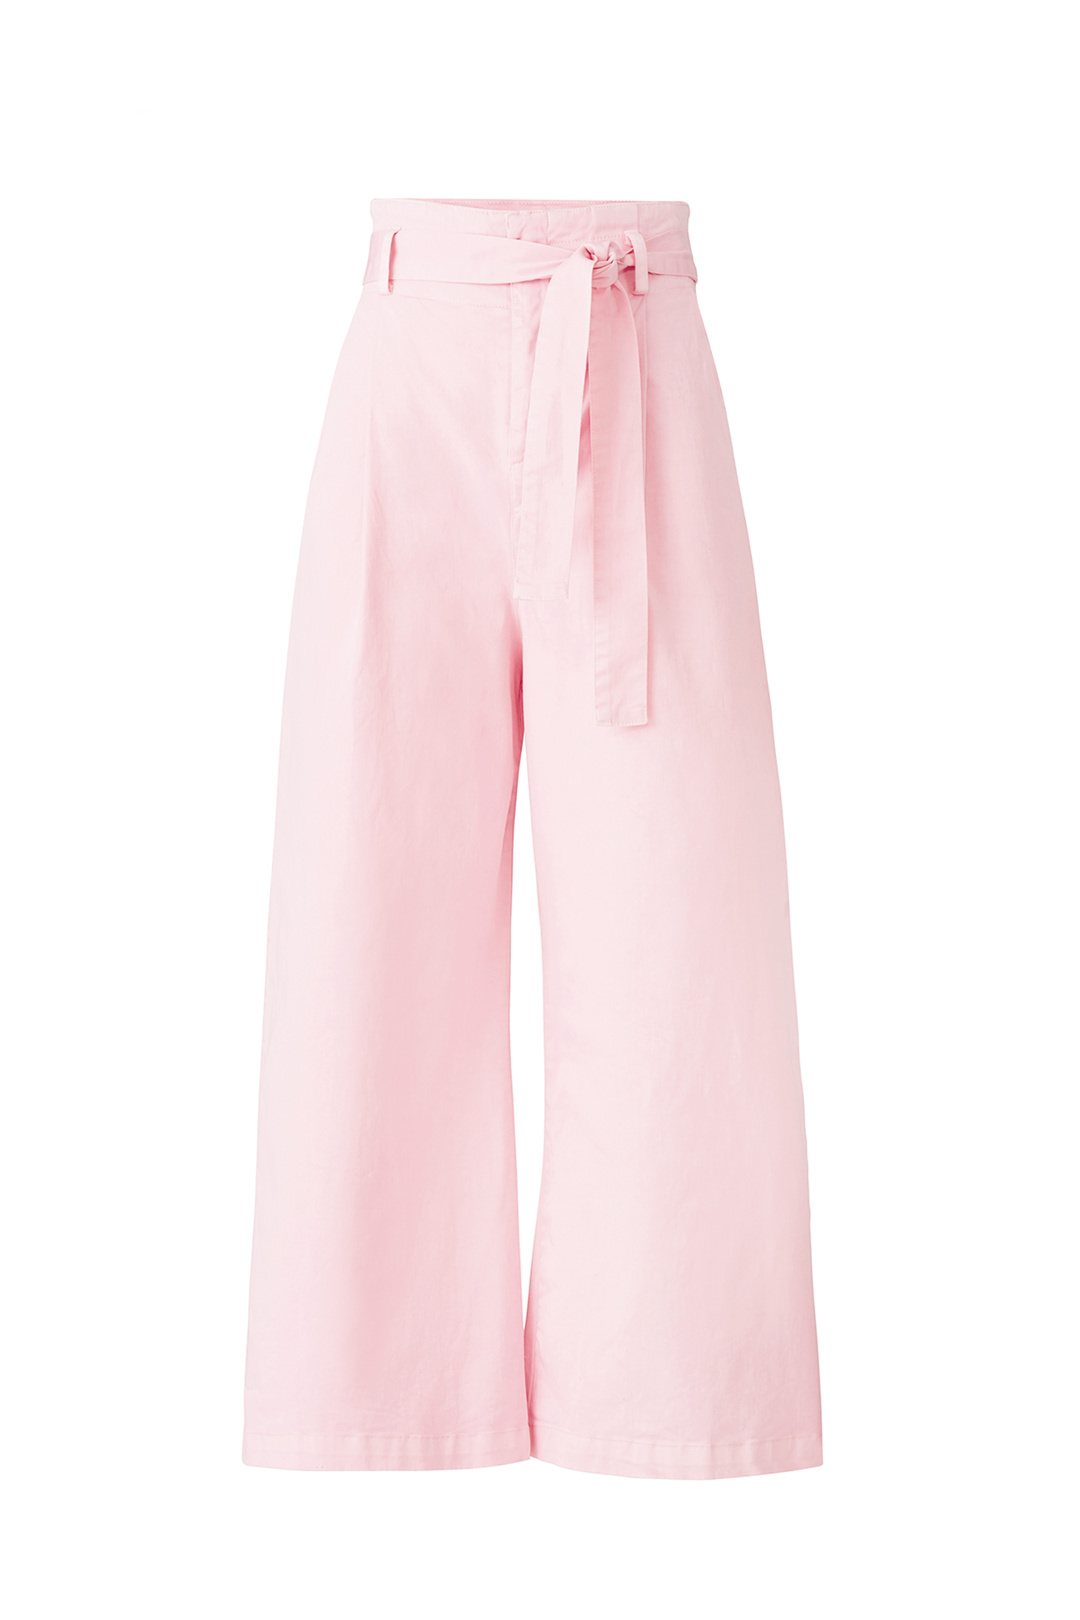 Tara Jarmon Culottes from Rent the Runway